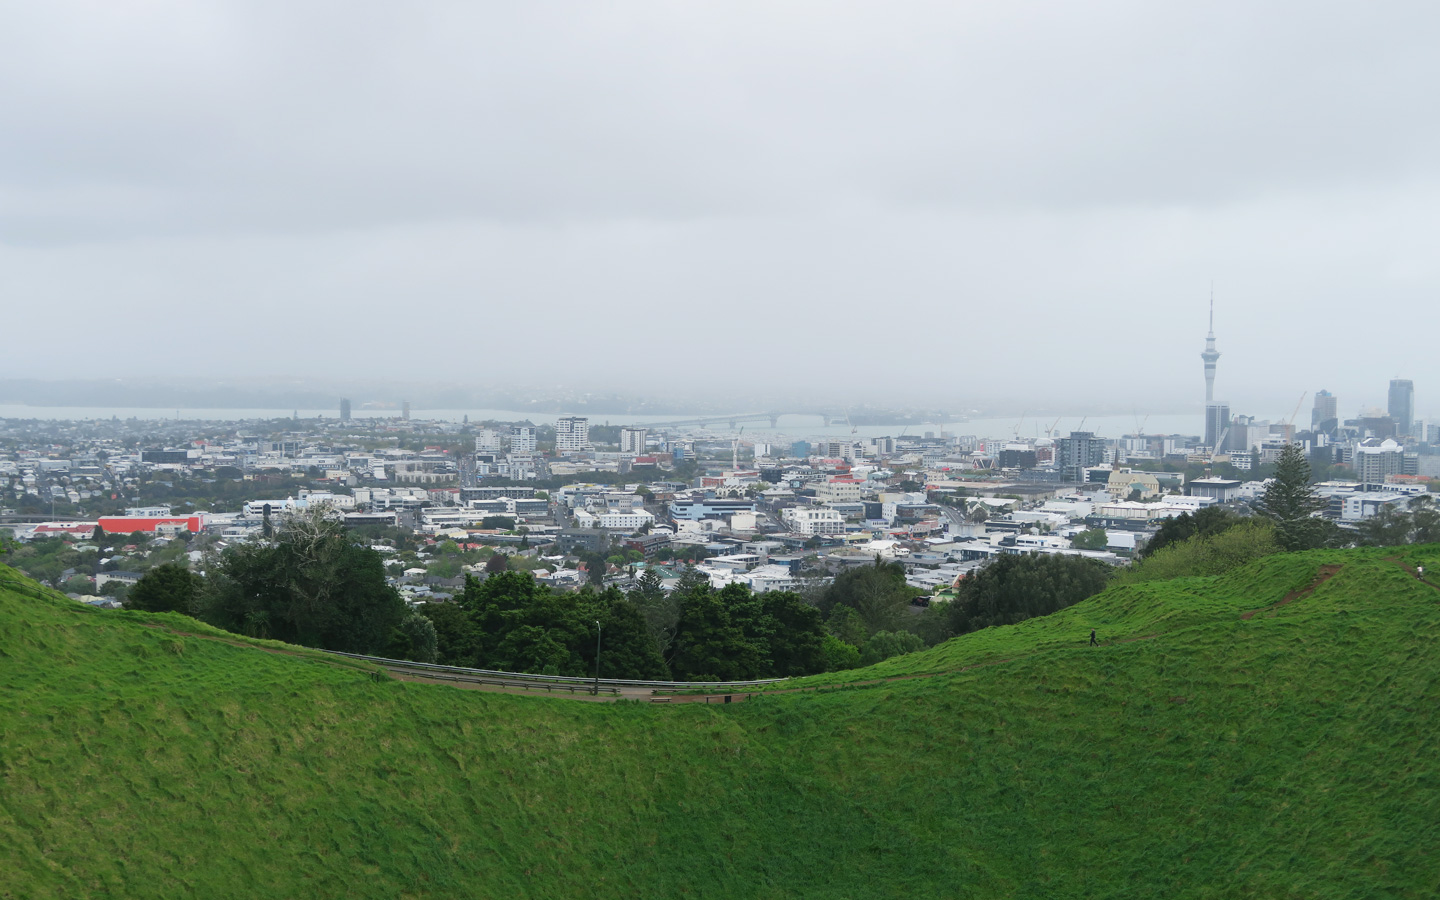 view of auckland city from mount eden in new zealand